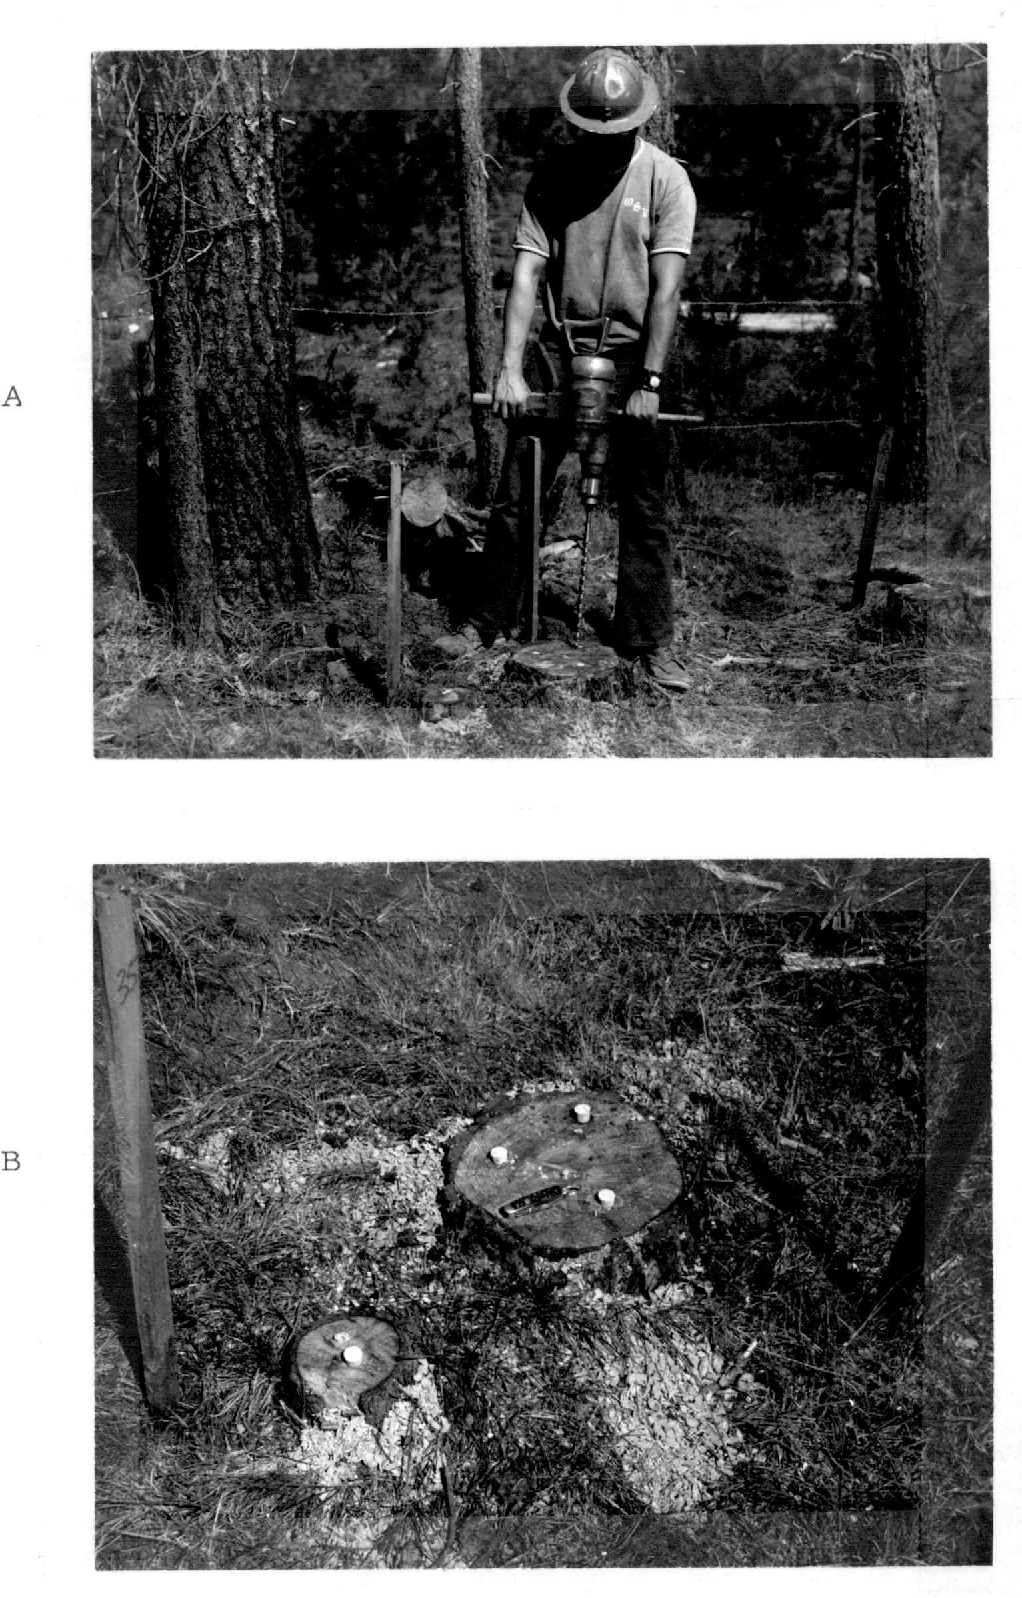 Fig. 11. (A) Drilling holes in a pine stump to accommodate the chemical treatments. (B) Drill holes have been closed with cork stoppers following treatment.